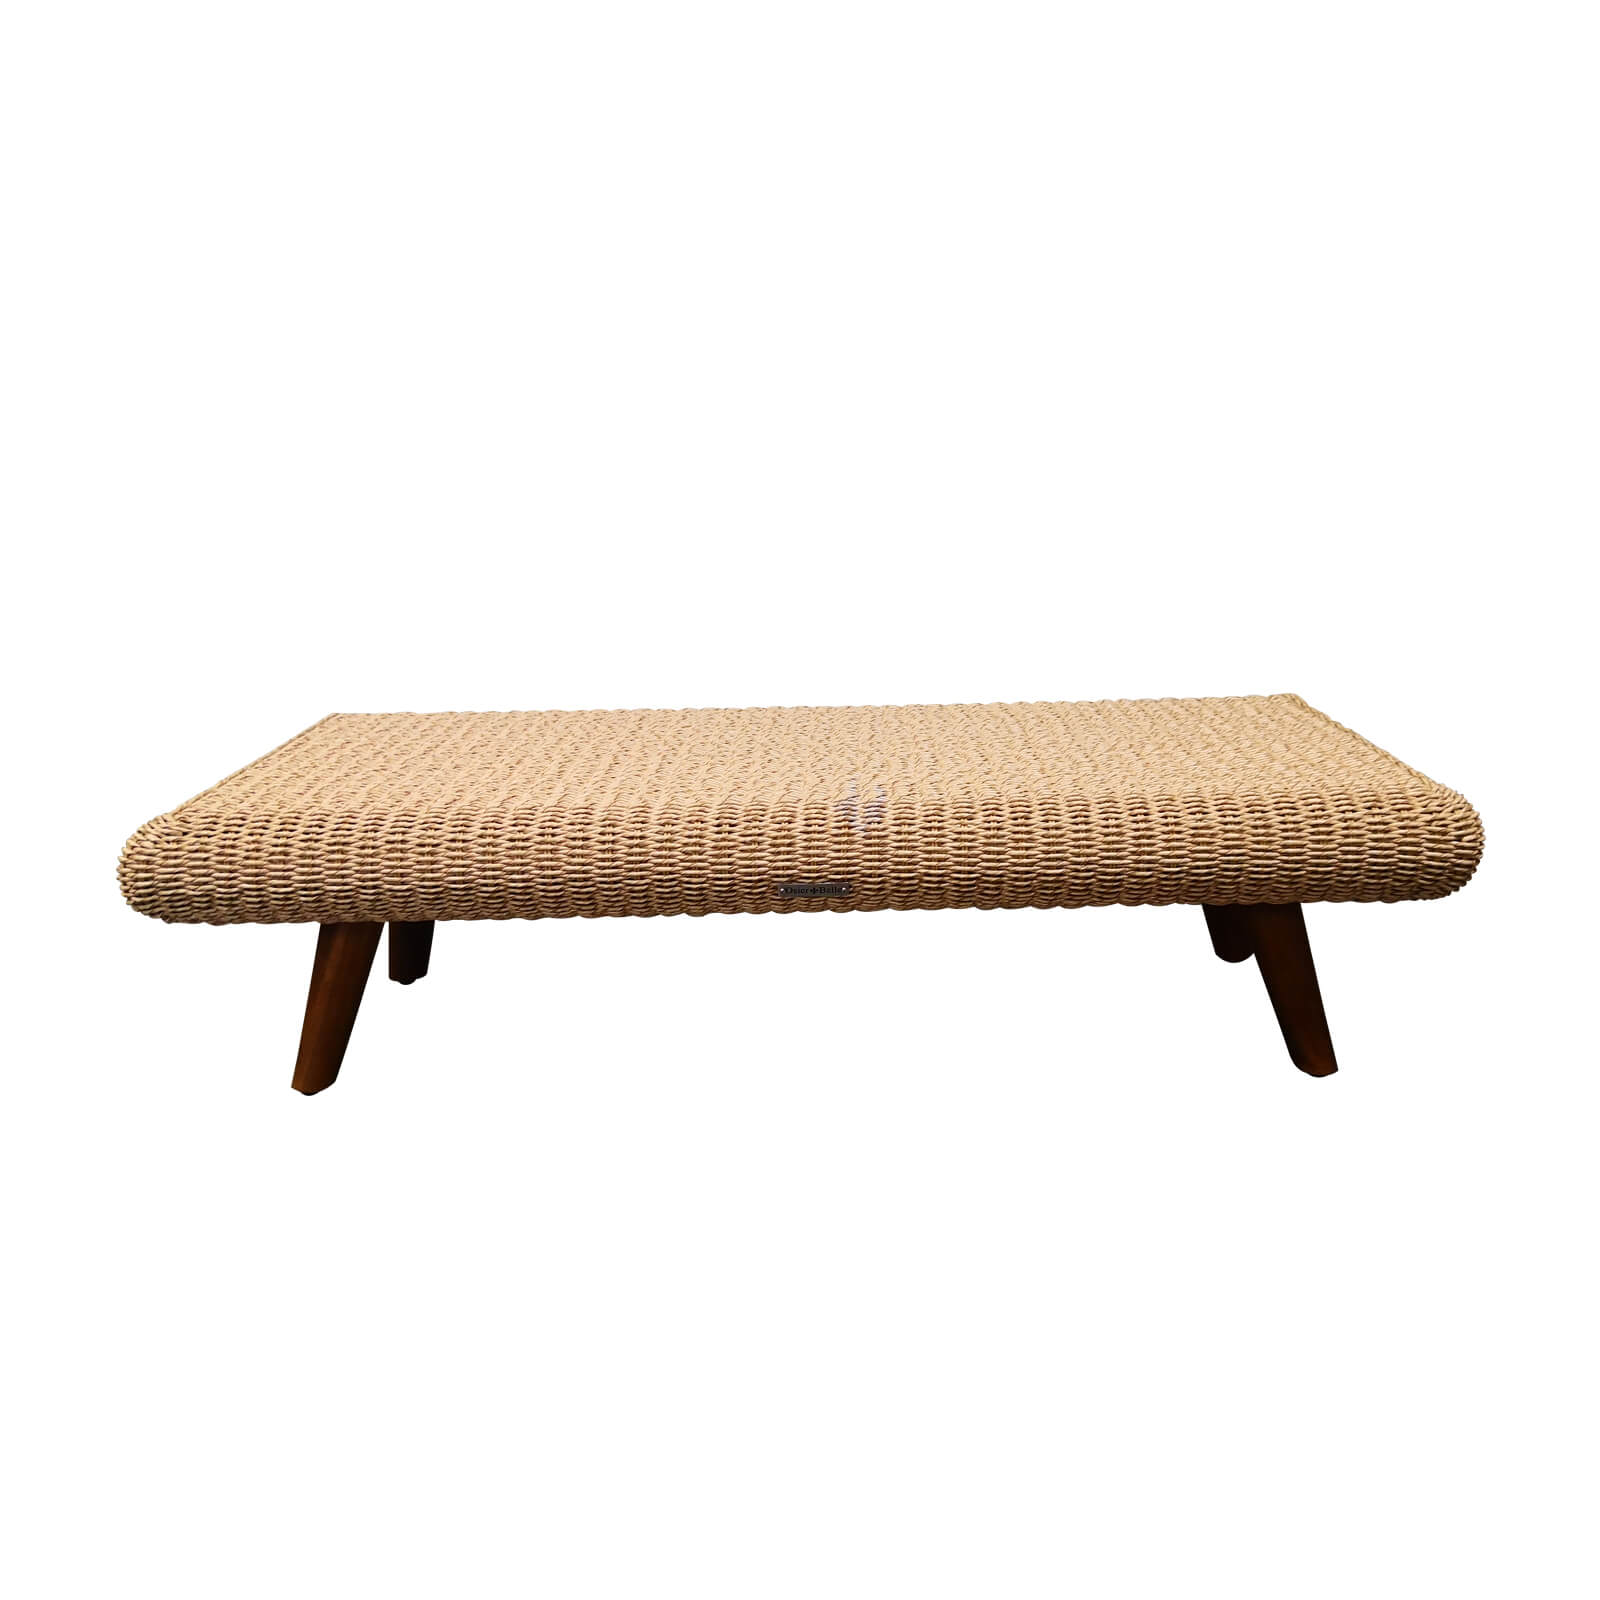 Two Design Lovers outdoor furniture wicker coffee table Osier Belle Bulle